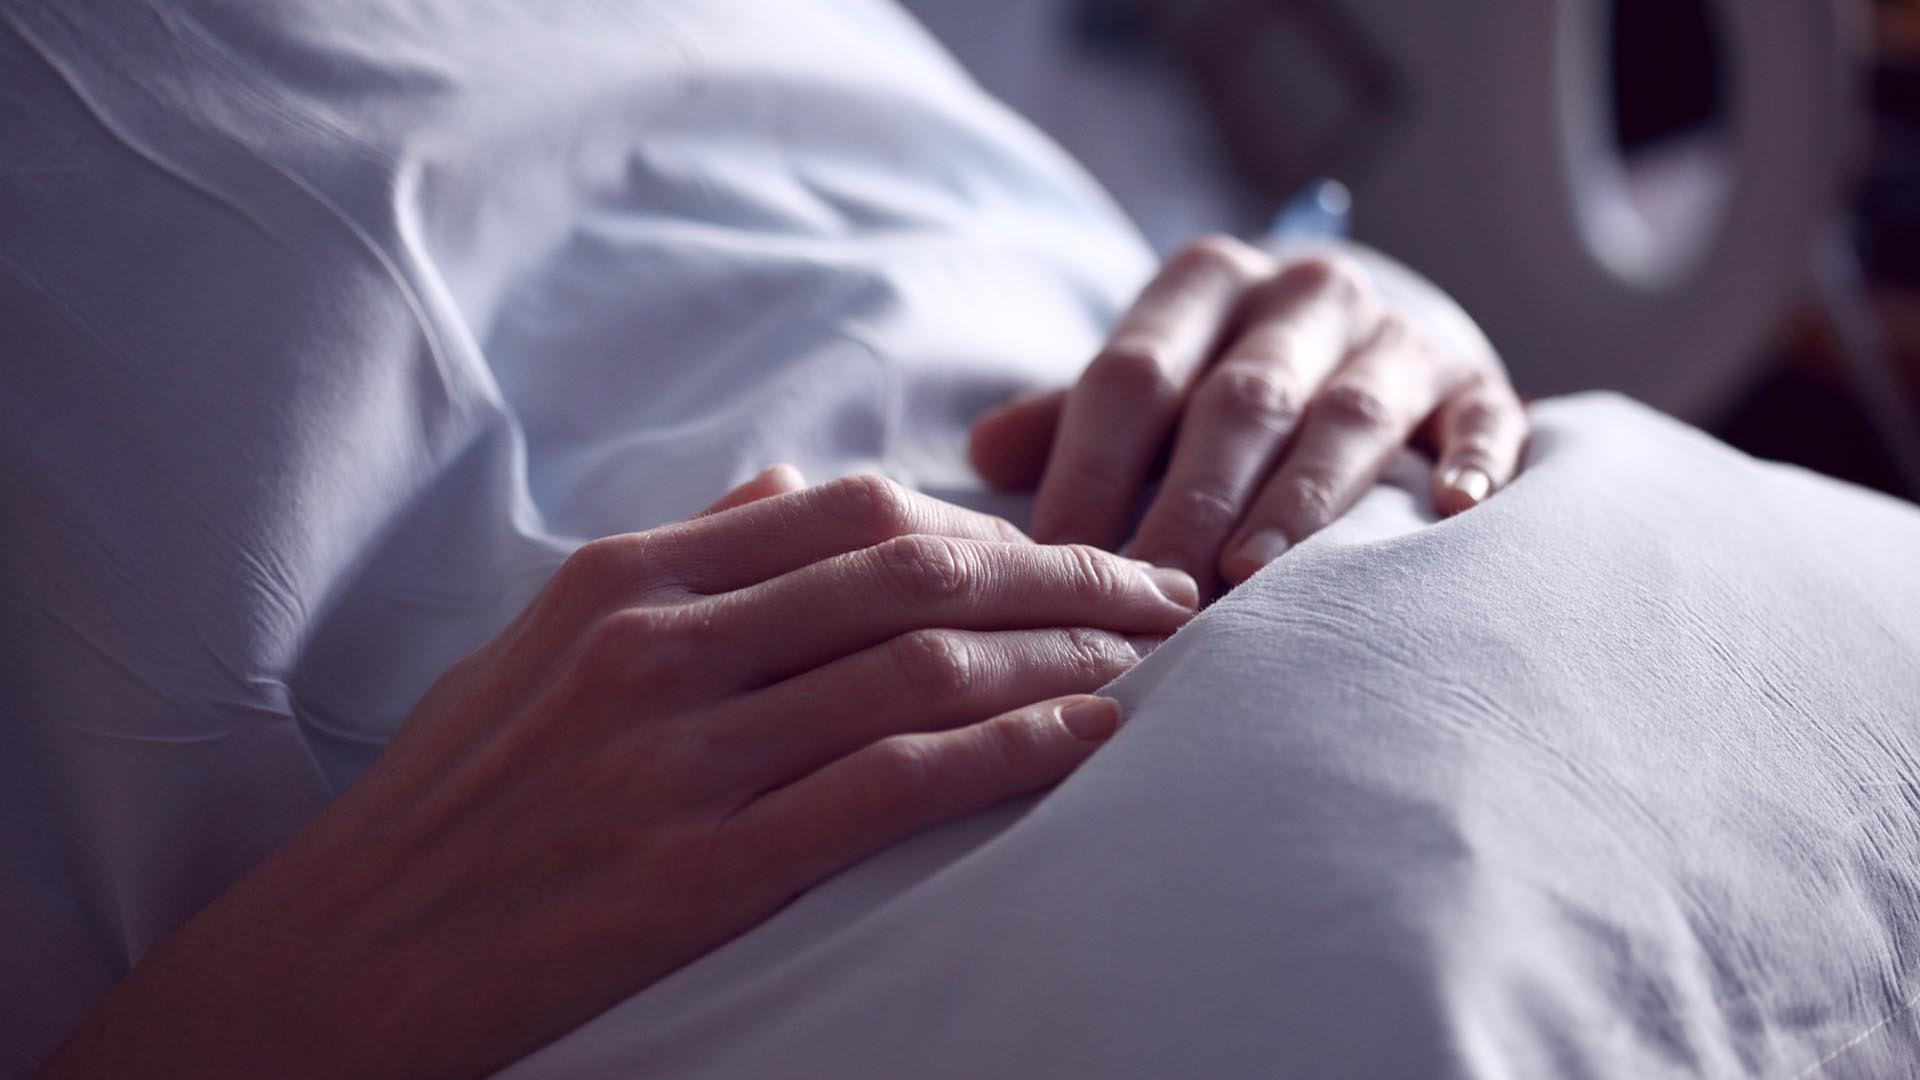 patient's hands clutching a pill in a hospital bed